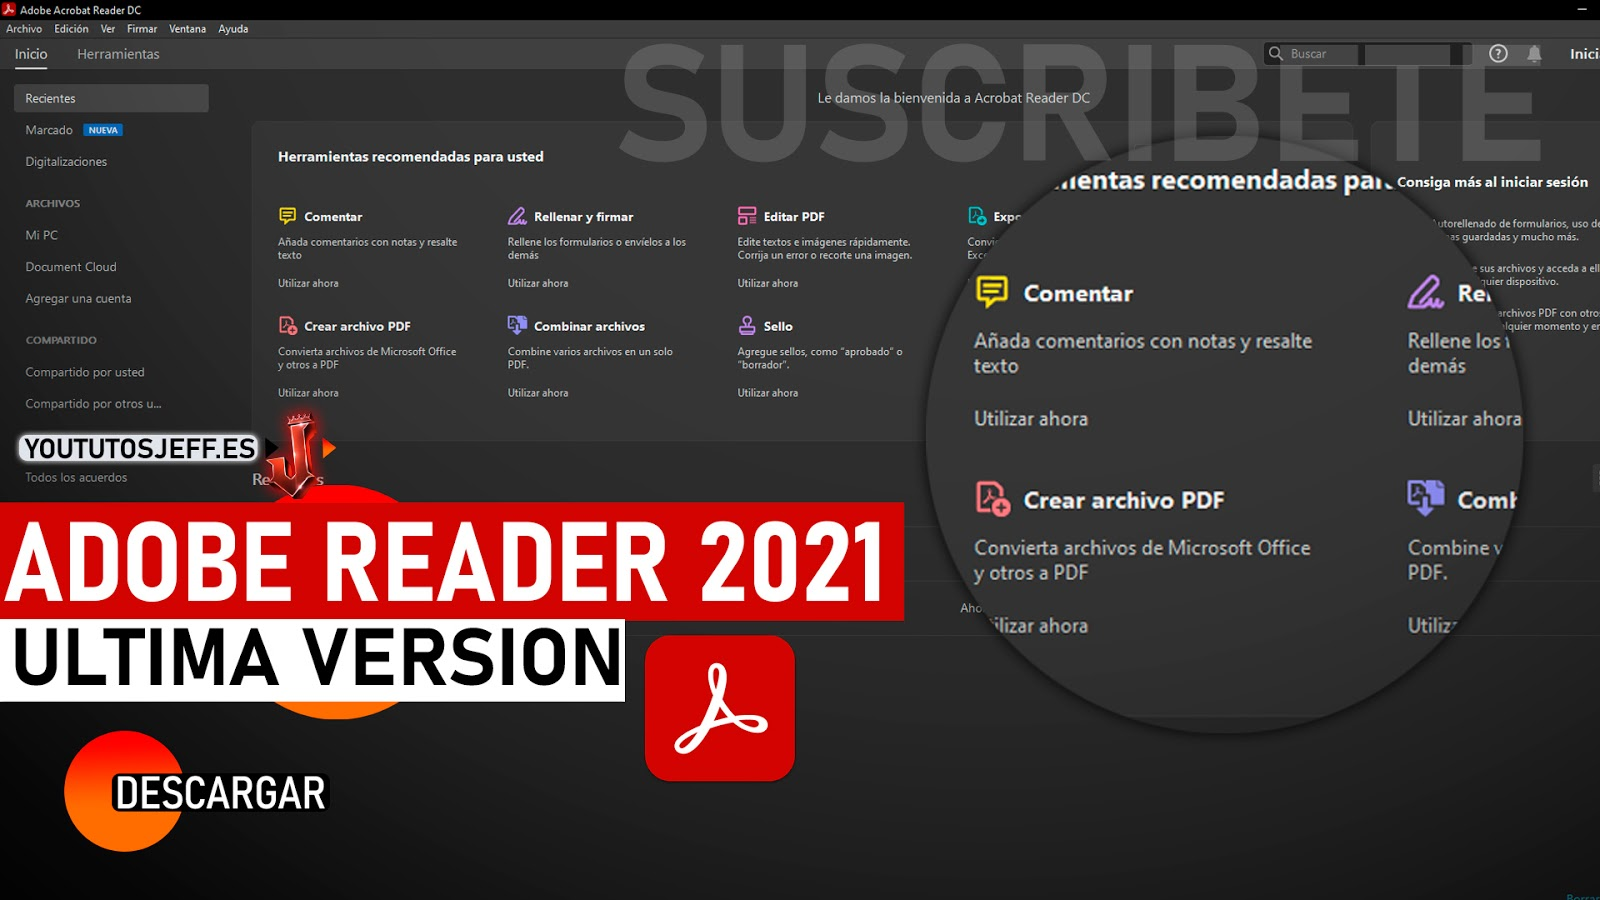 Como Descargar Adobe Reader Ultima Version 2021 Español